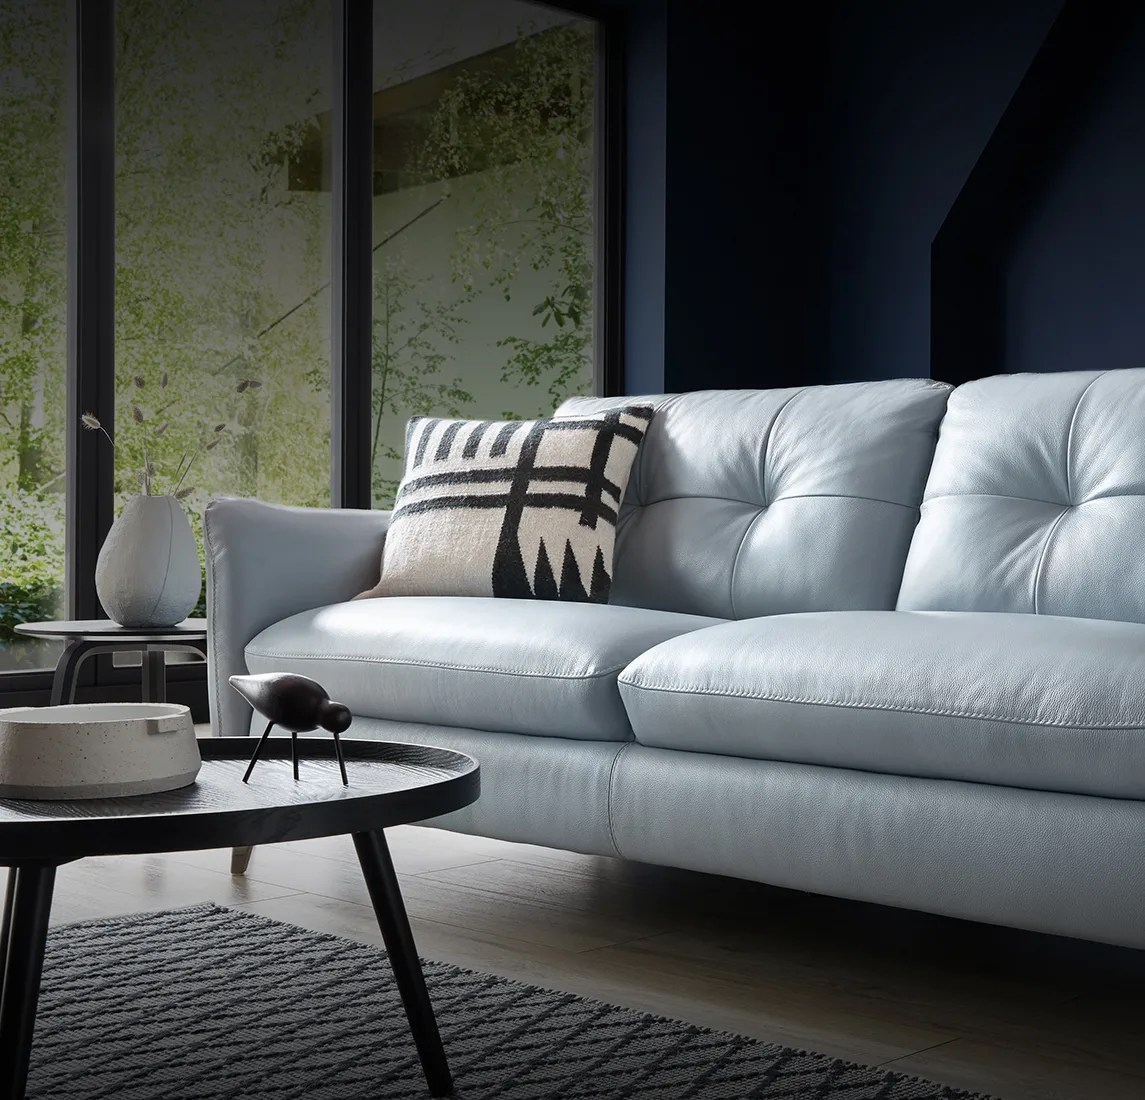 Sofology Leather Fabric Sofas Corners Sofa Beds Chairs - Dfs Sofa Kettering